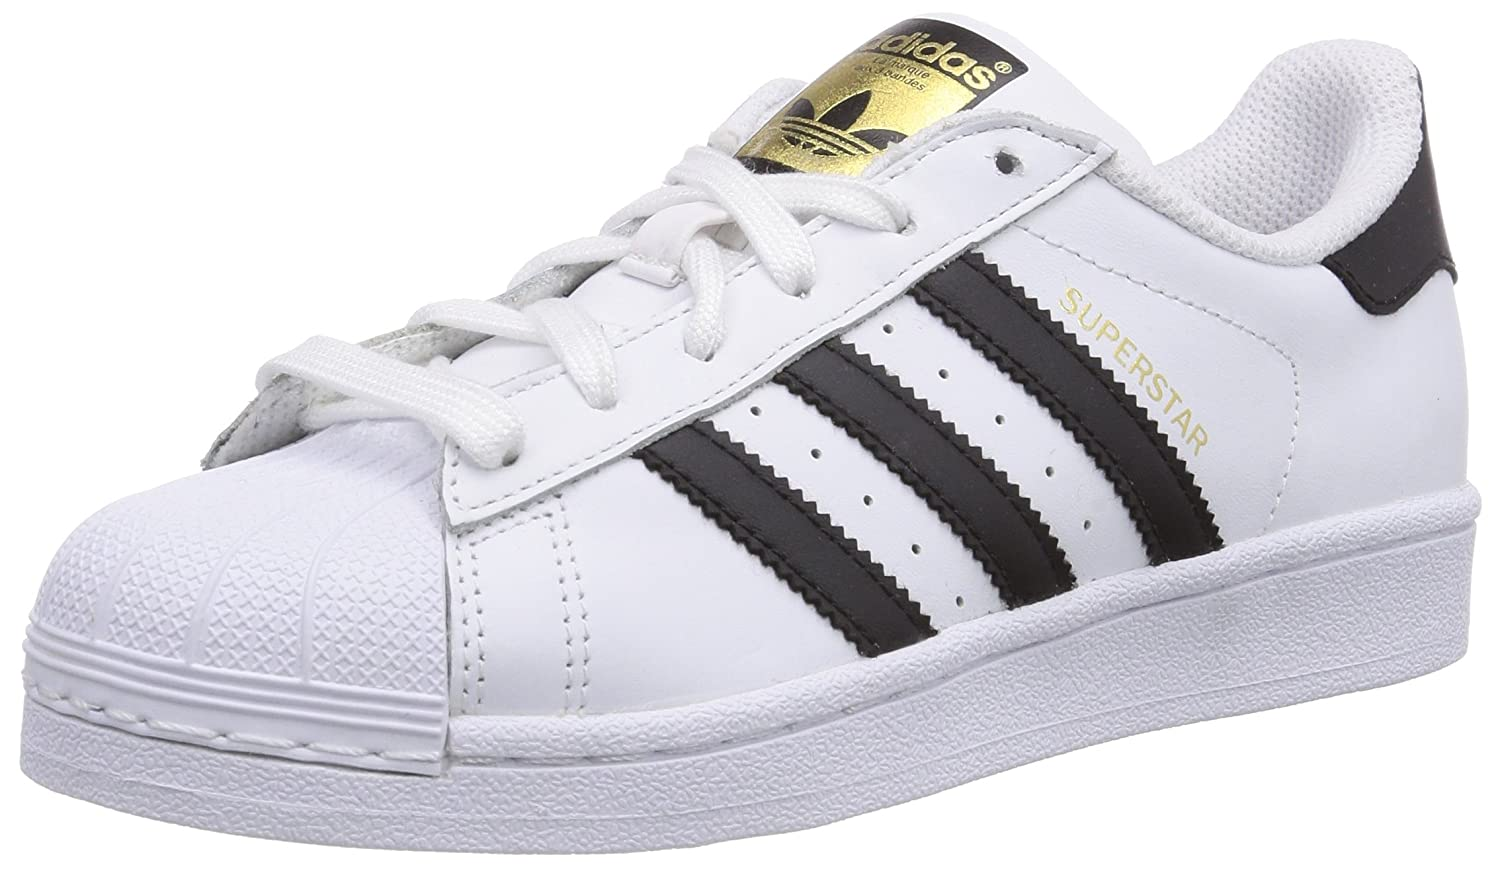 adidas Superstar Foundation, Scarpe da Ginnastica Basse Unisex - Adulto: MainApps: Amazon.it: Scarpe e borse